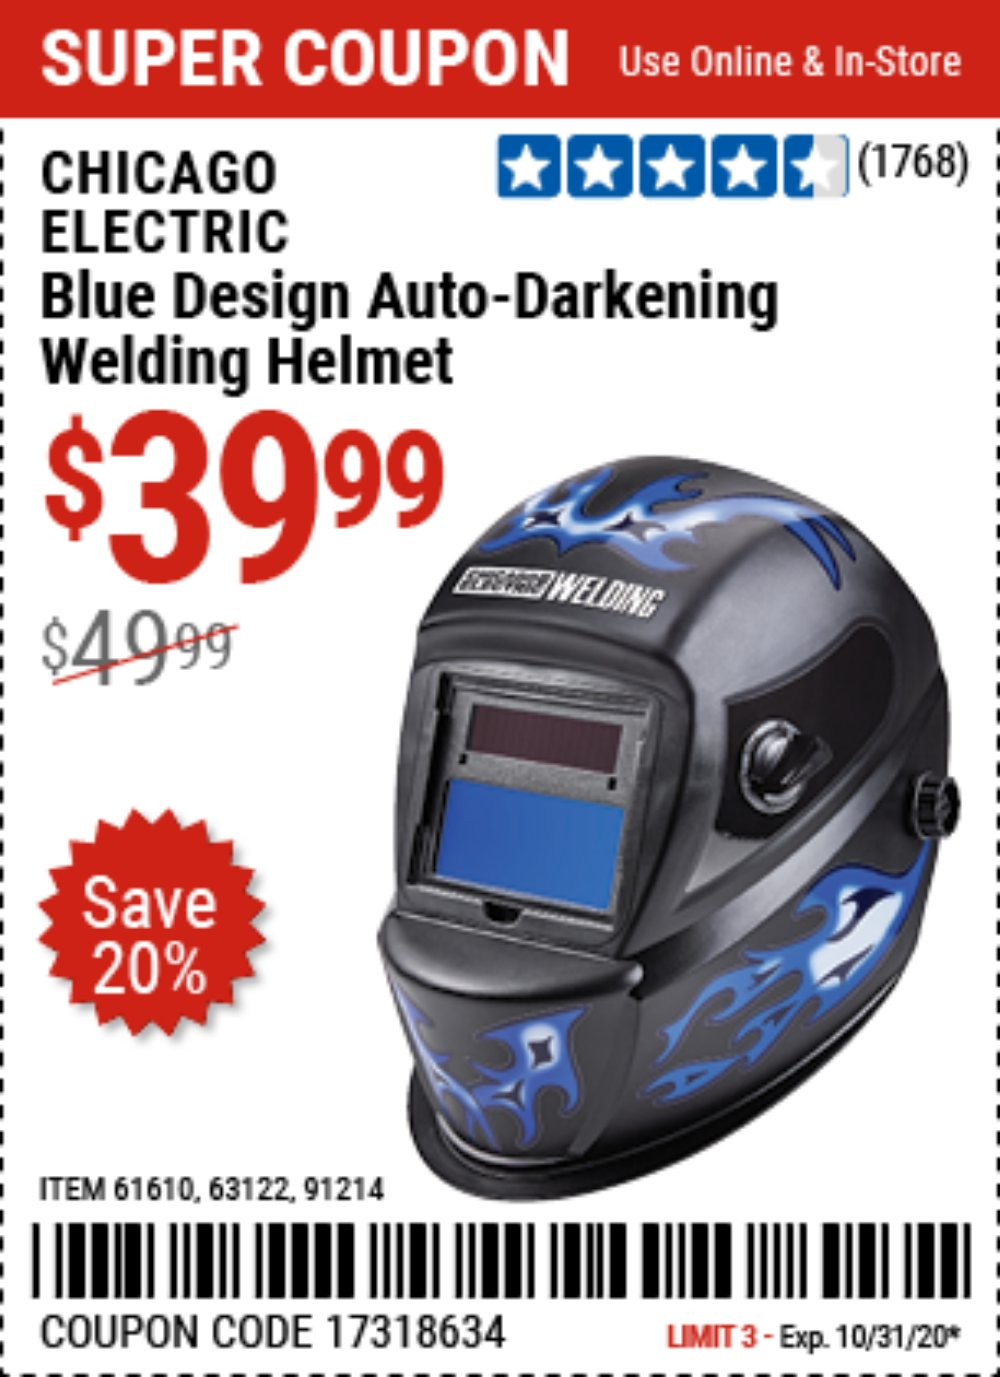 Harbor Freight Coupon, HF Coupons - Auto-darkening Welding Helmet With Blue Flame Design